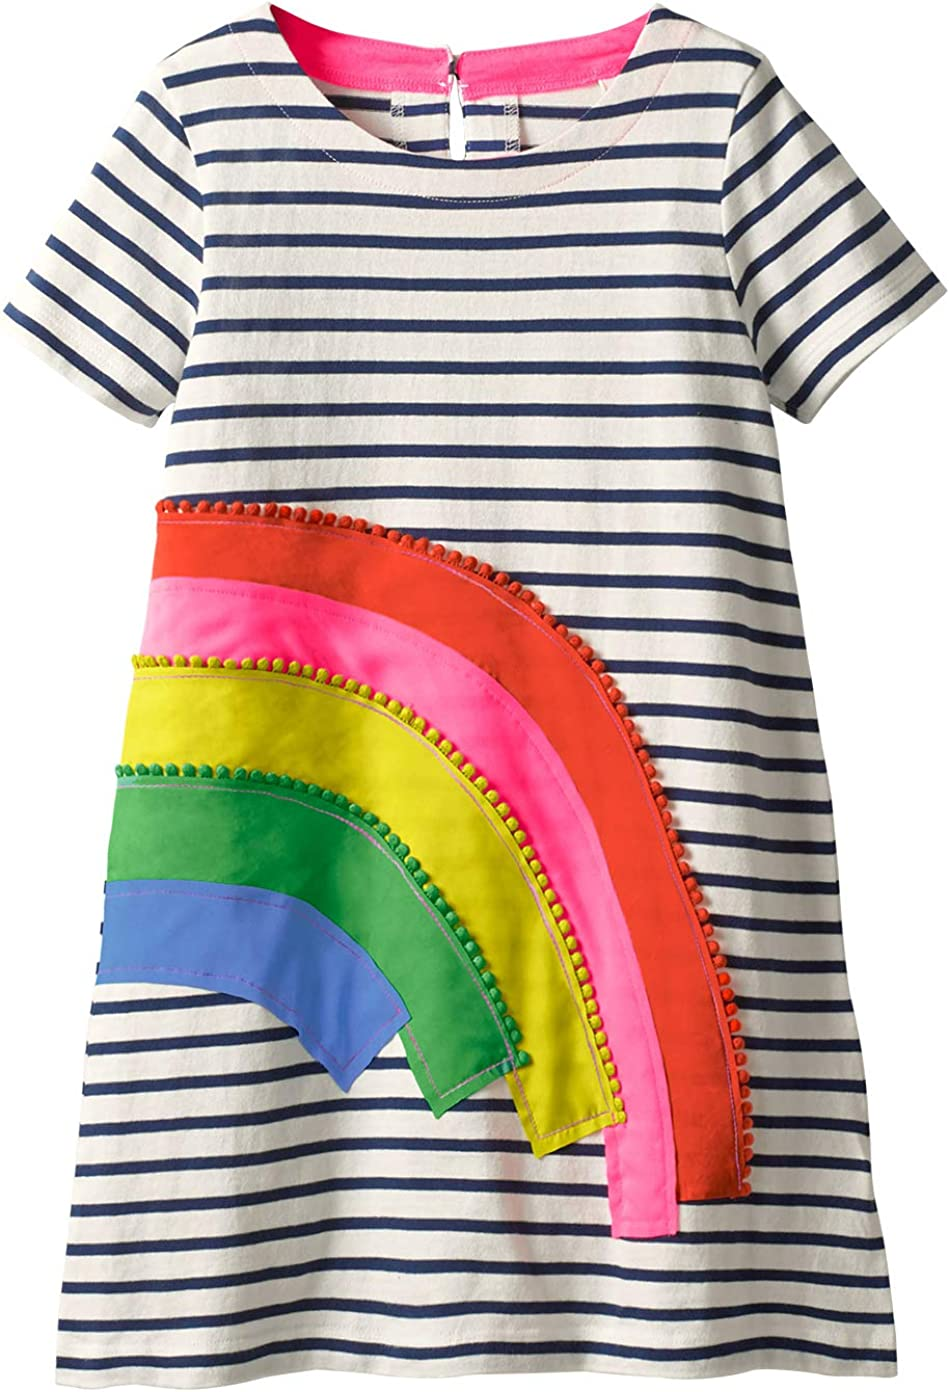 Fiream Girls Dresses Cotton Striped Cartoon Applique Casual Animal Printed Outfits Dress: Clothing